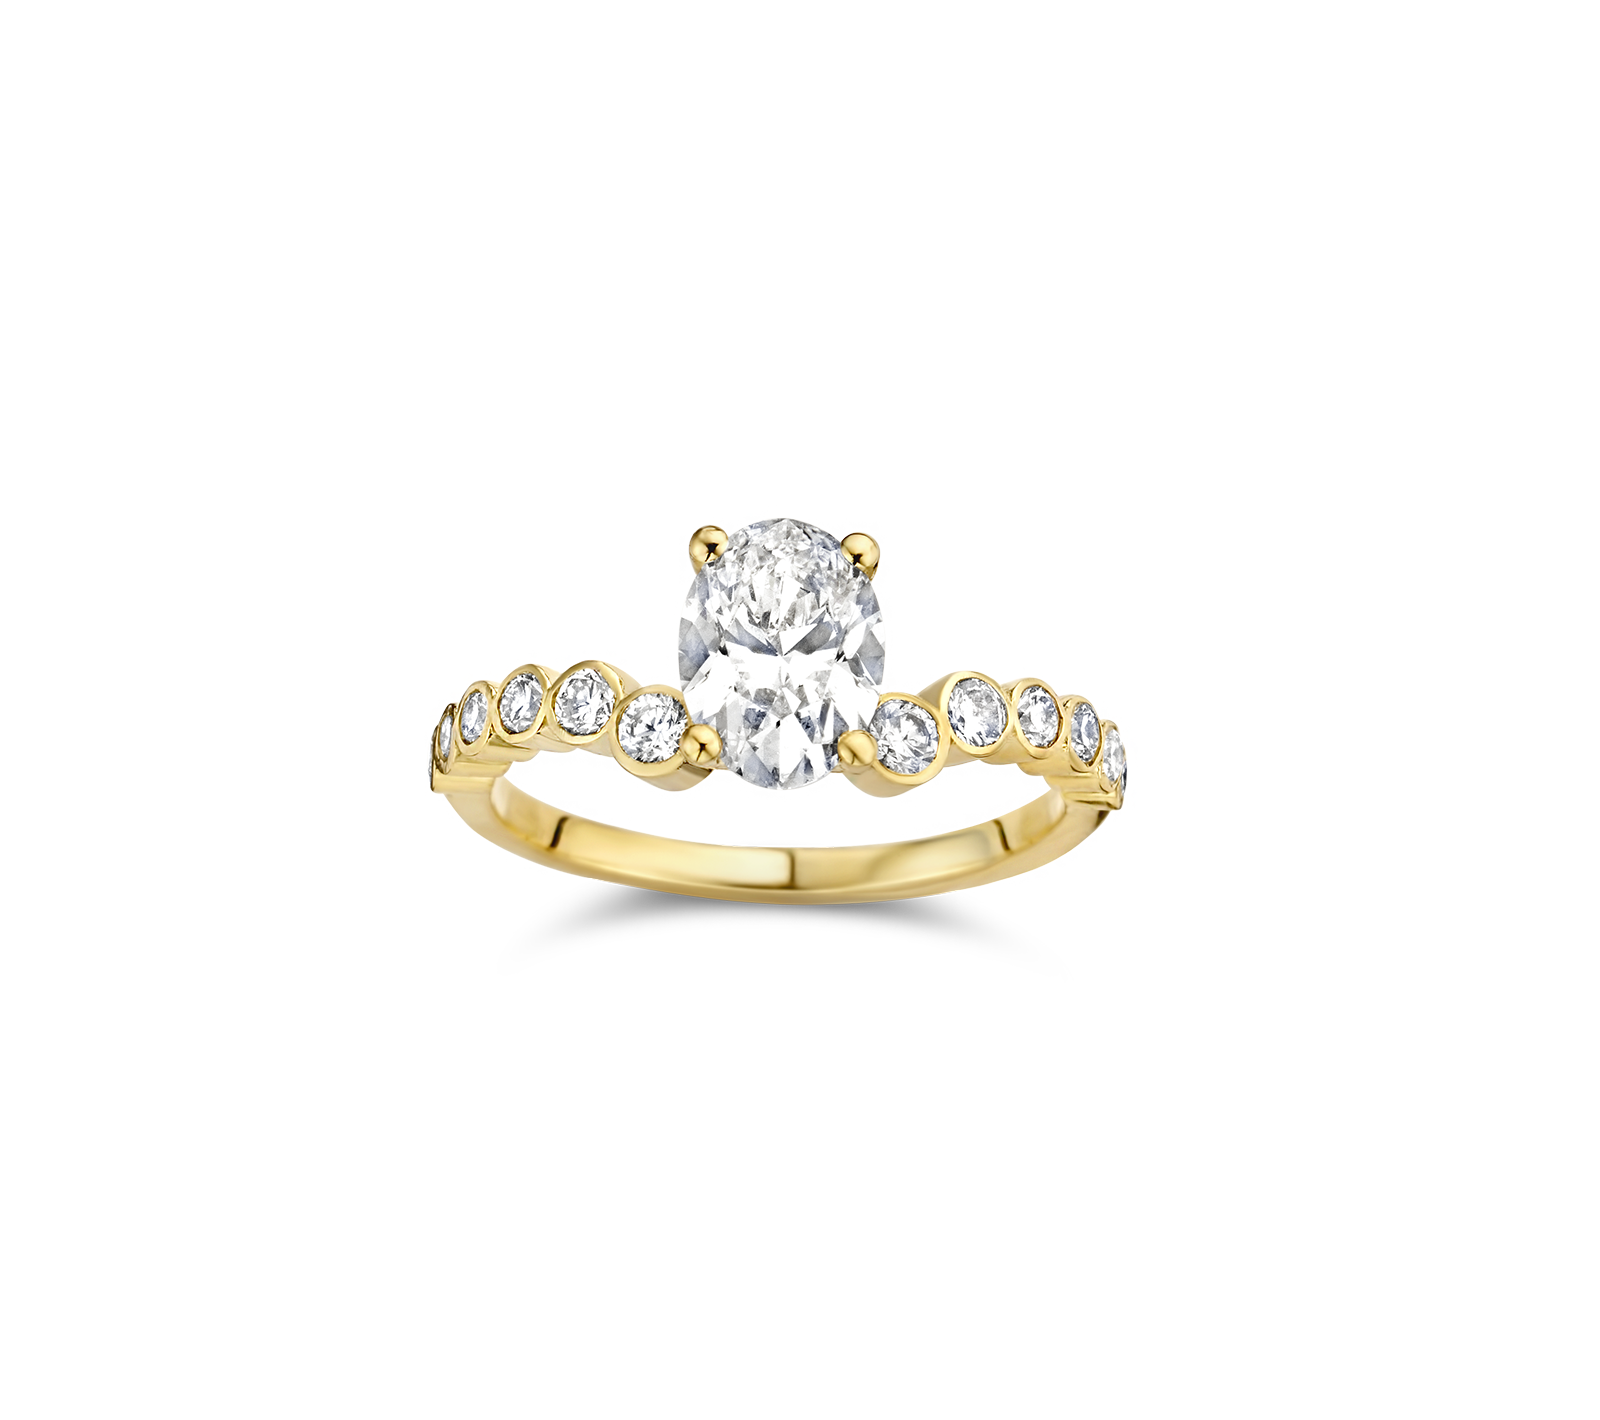 Ruth engagement ring packshot - yellow gold